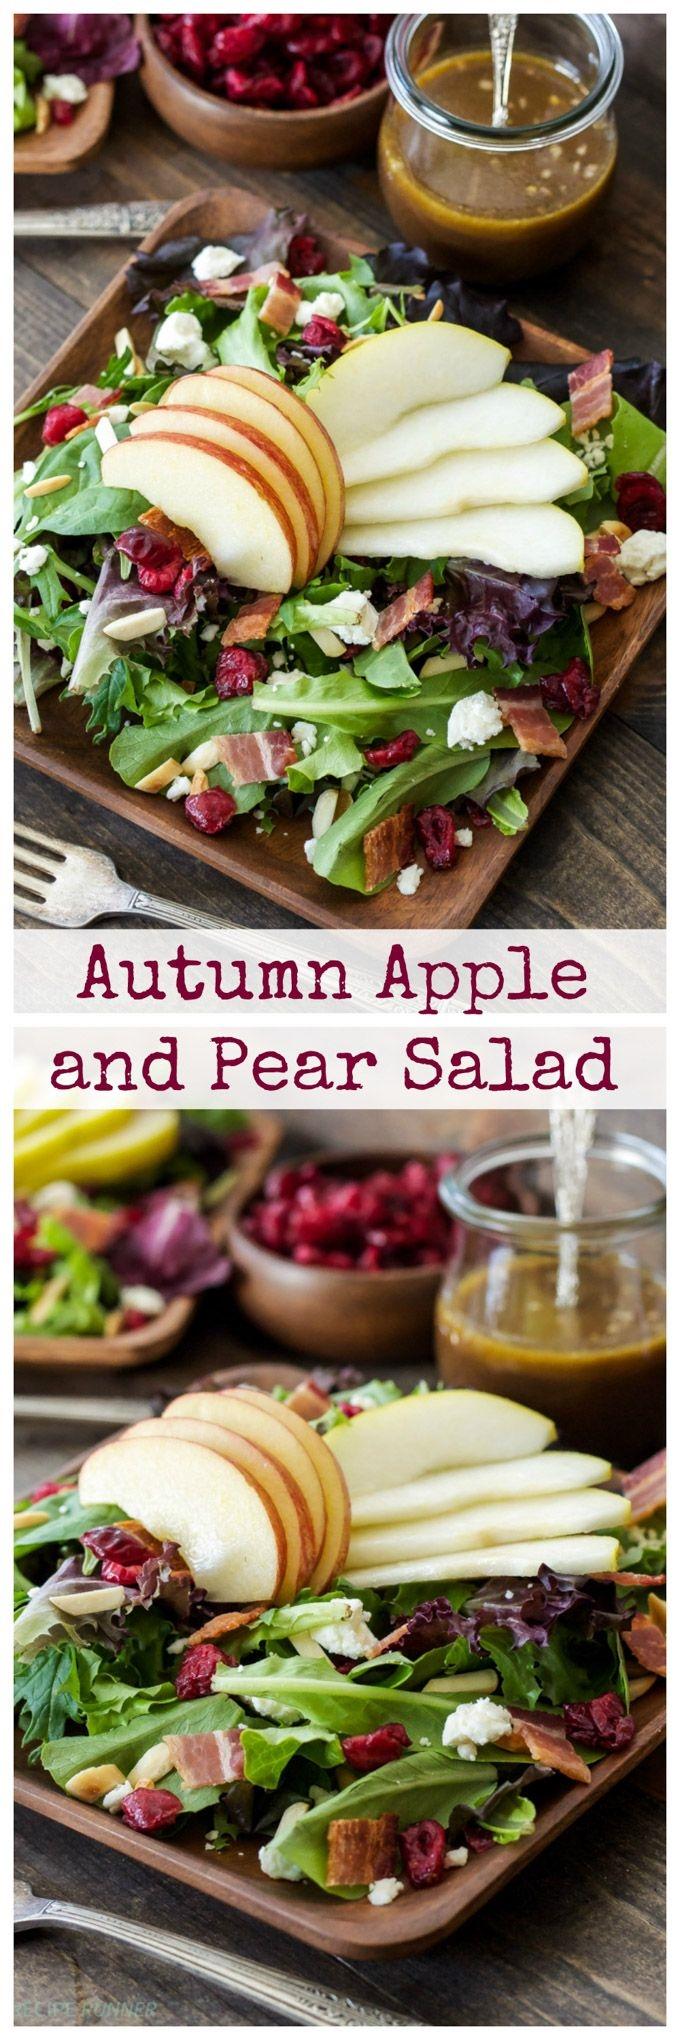 Autumn Apple and Pear Salad: Sweet pears and apples paired with salty feta and bacon are the perfect combination in this autumn inspired salad! #weightlossmotivation